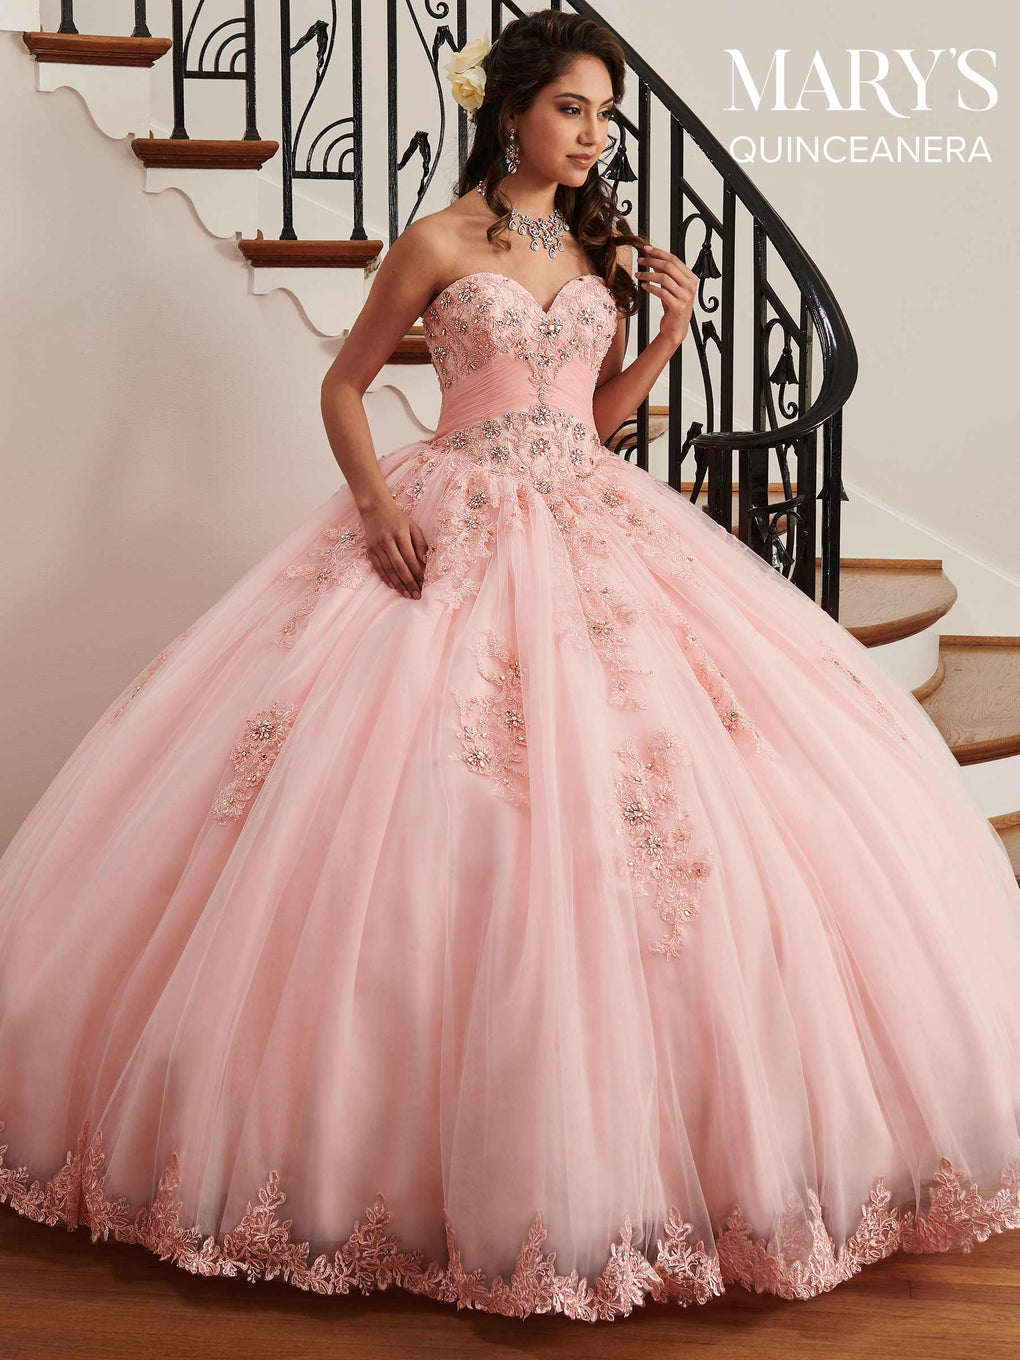 Marys Quinceanera Dresses in Blush, Ivory, Navy, Turquoise, or White Color